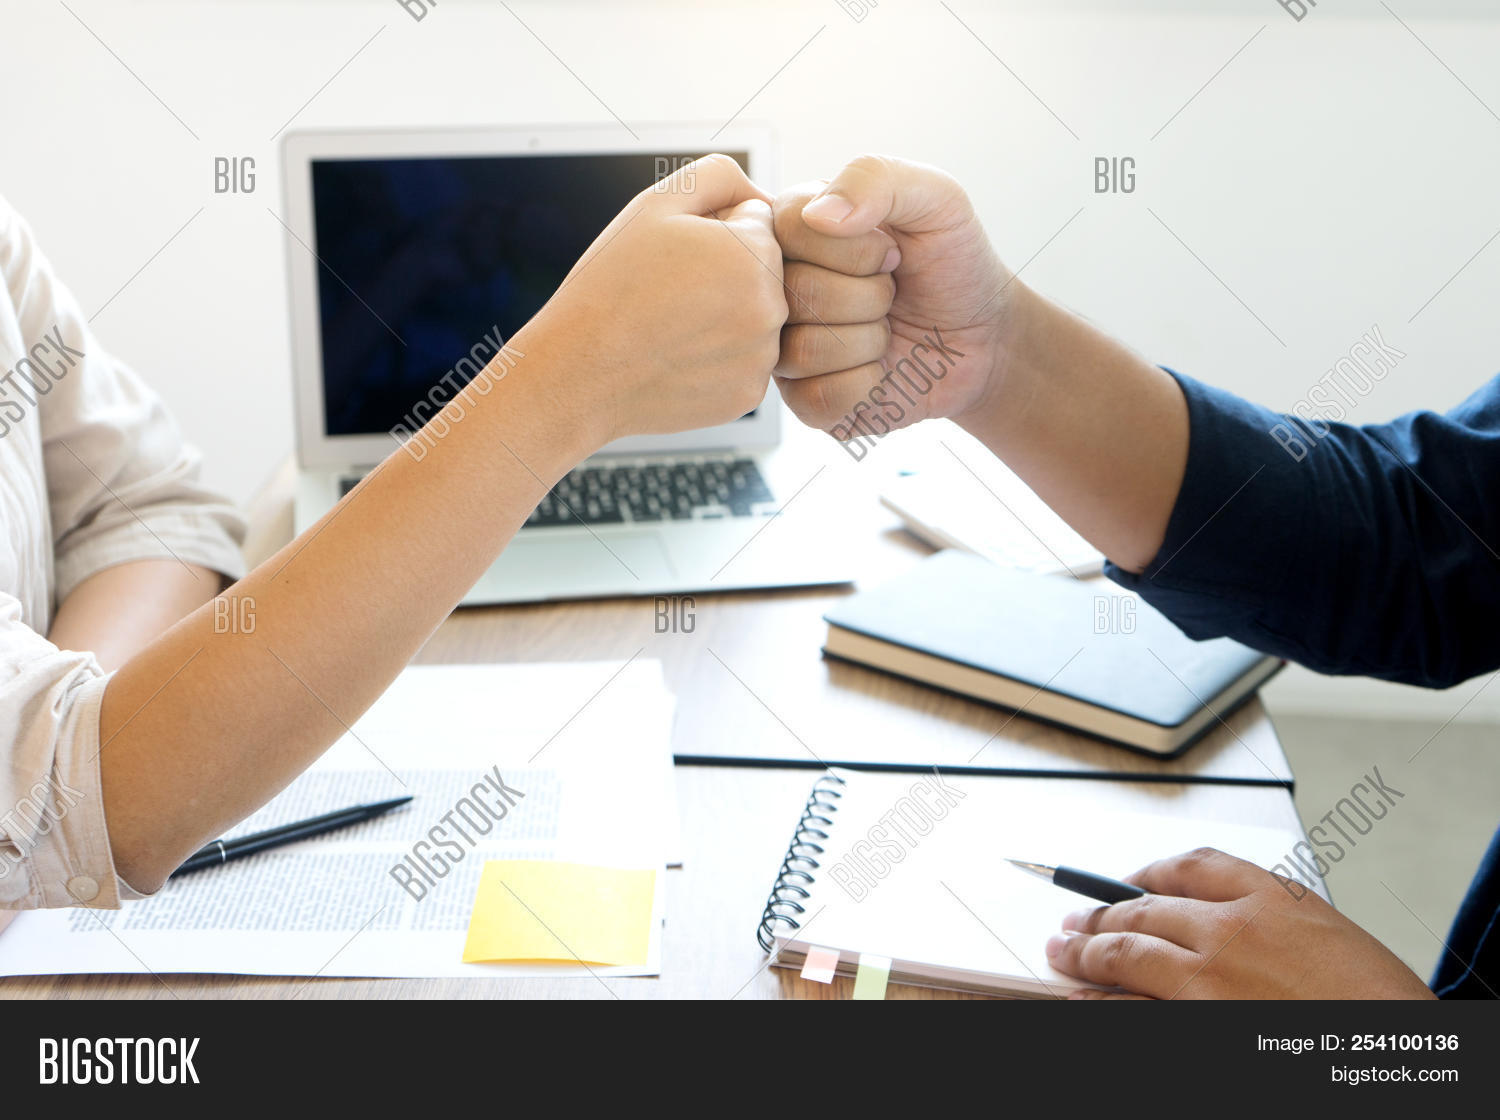 agreement,background,backgroundfist,brainstorming,bump,business,businessman,casual,cheerful,collaboration,communication,computer,concept,cooperation,corporate,coworker,deal,diverse,fight,fist,greeting,group,hand,human,job,male,man,marketing,meeting,men,partner,partnership,people,person,power,professional,punch,sign,success,support,team,teamwork,together,trust,two,white,work,worker,working,young